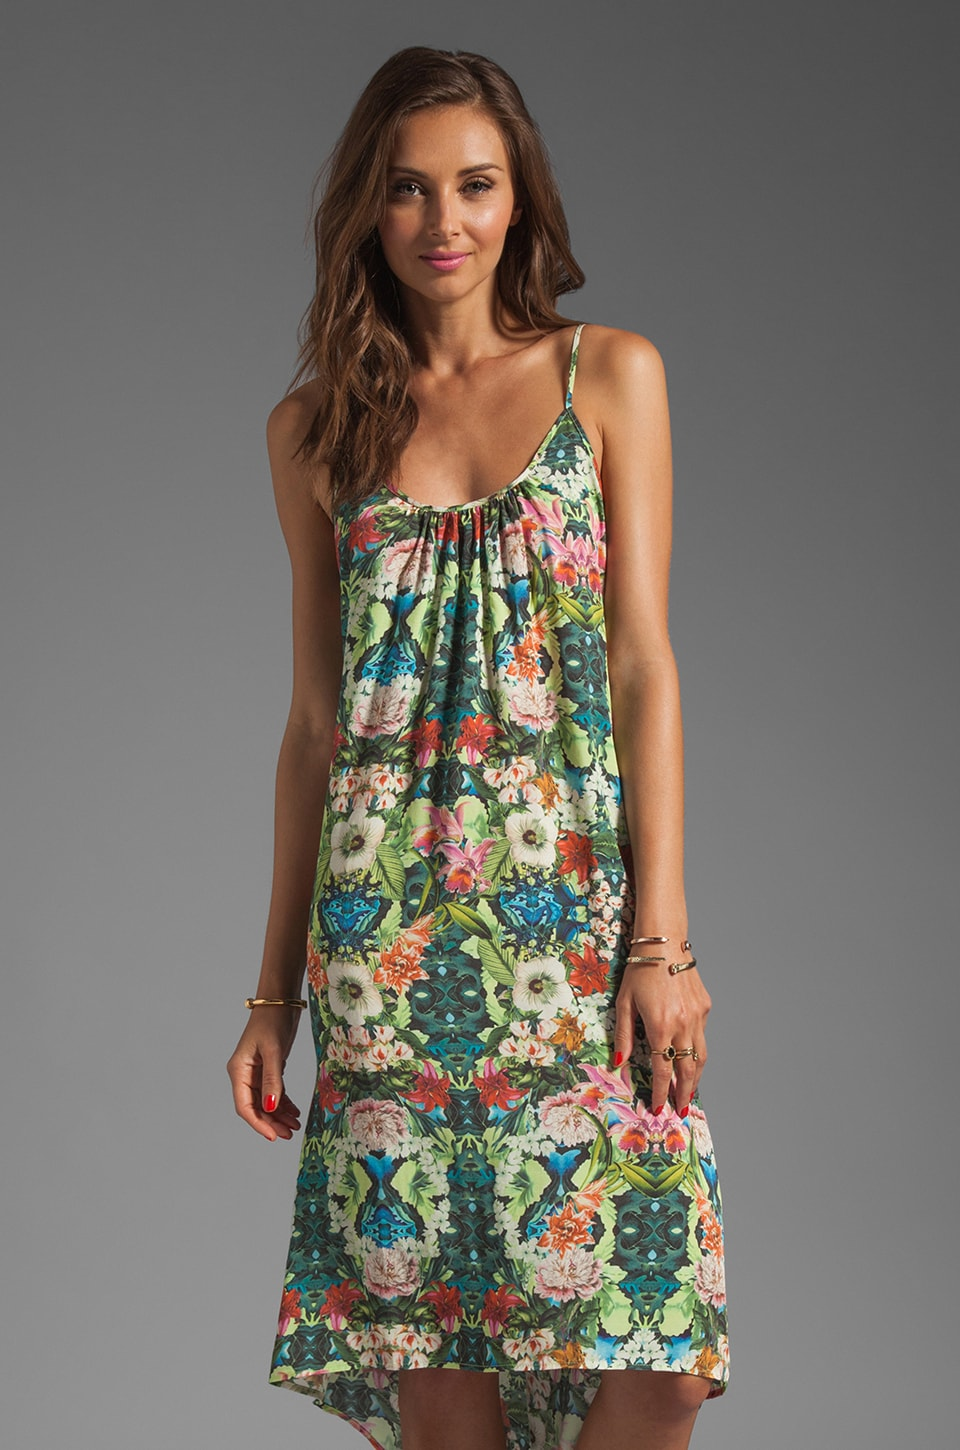 SAM&LAVI Blossom Dress in Leilani Print